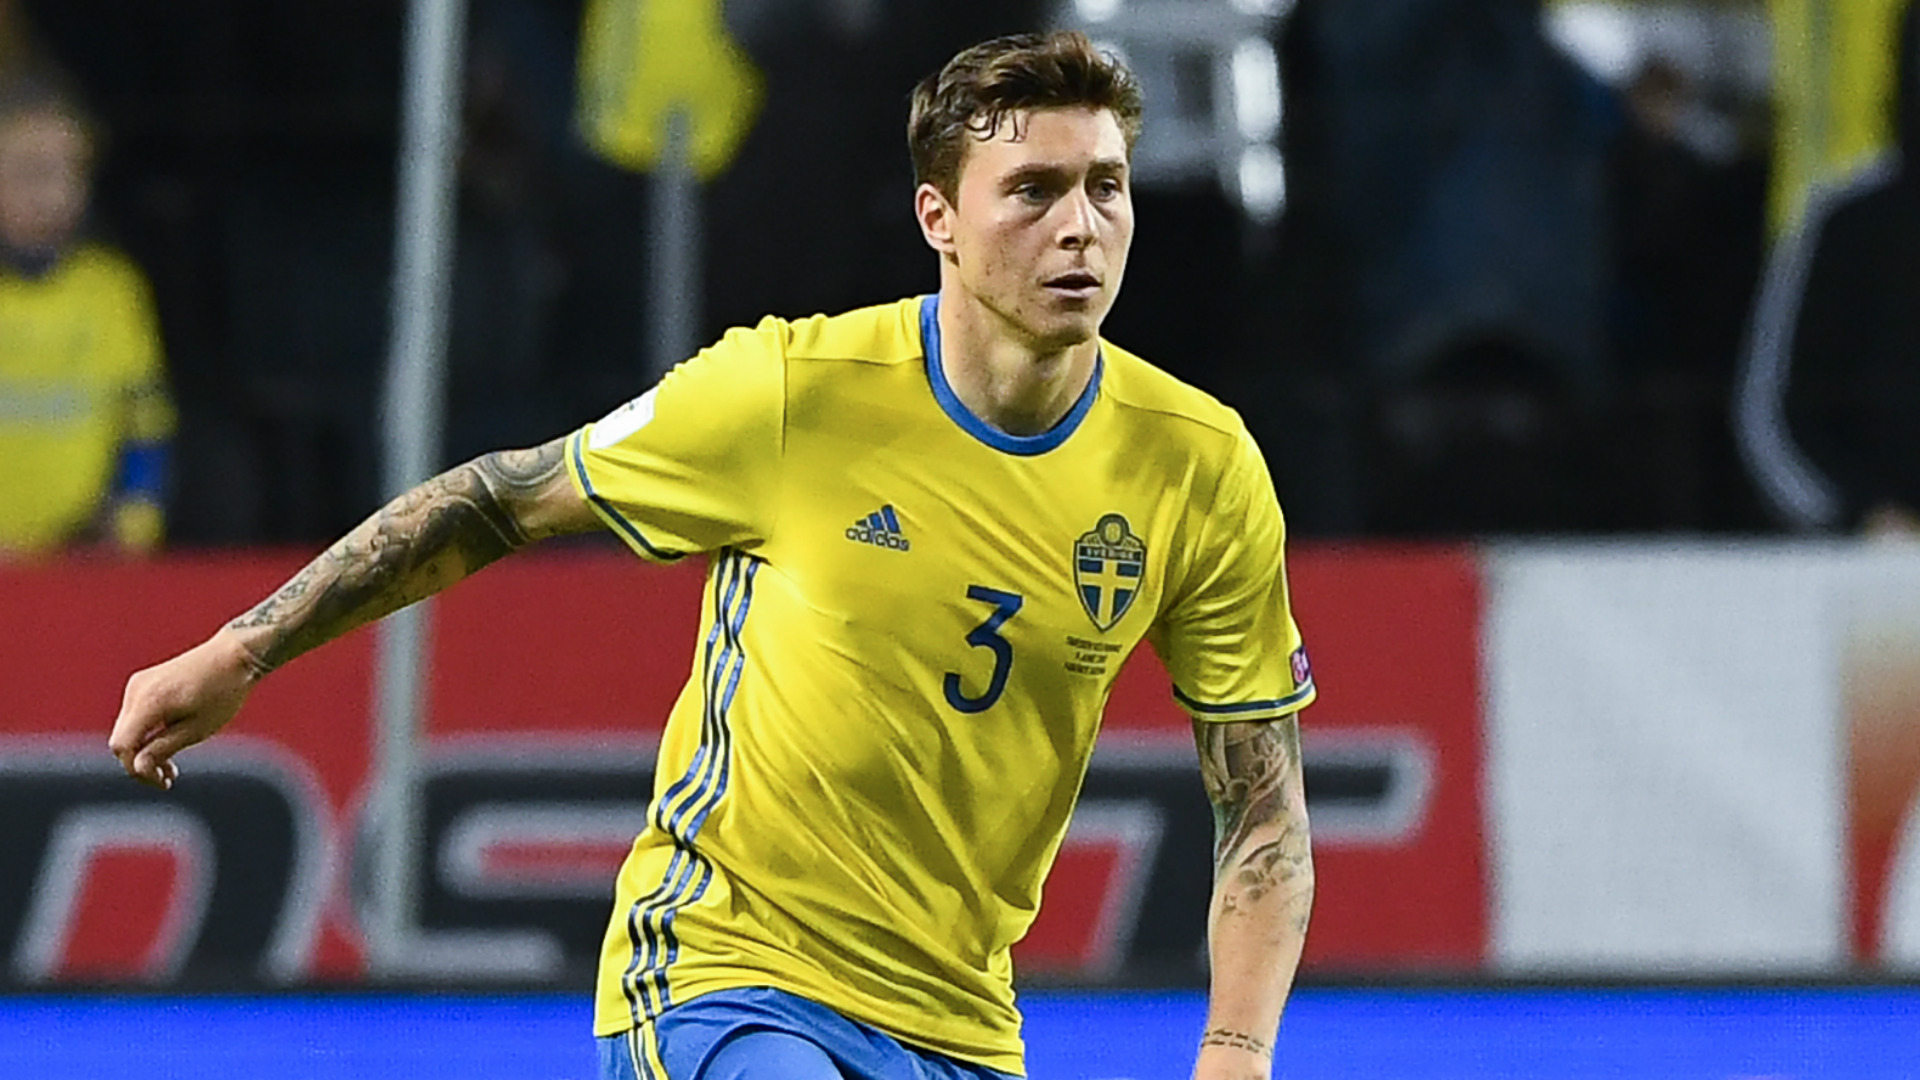 Victor lindelof seen arriving at carrington for manchester - Victor lindelof ...